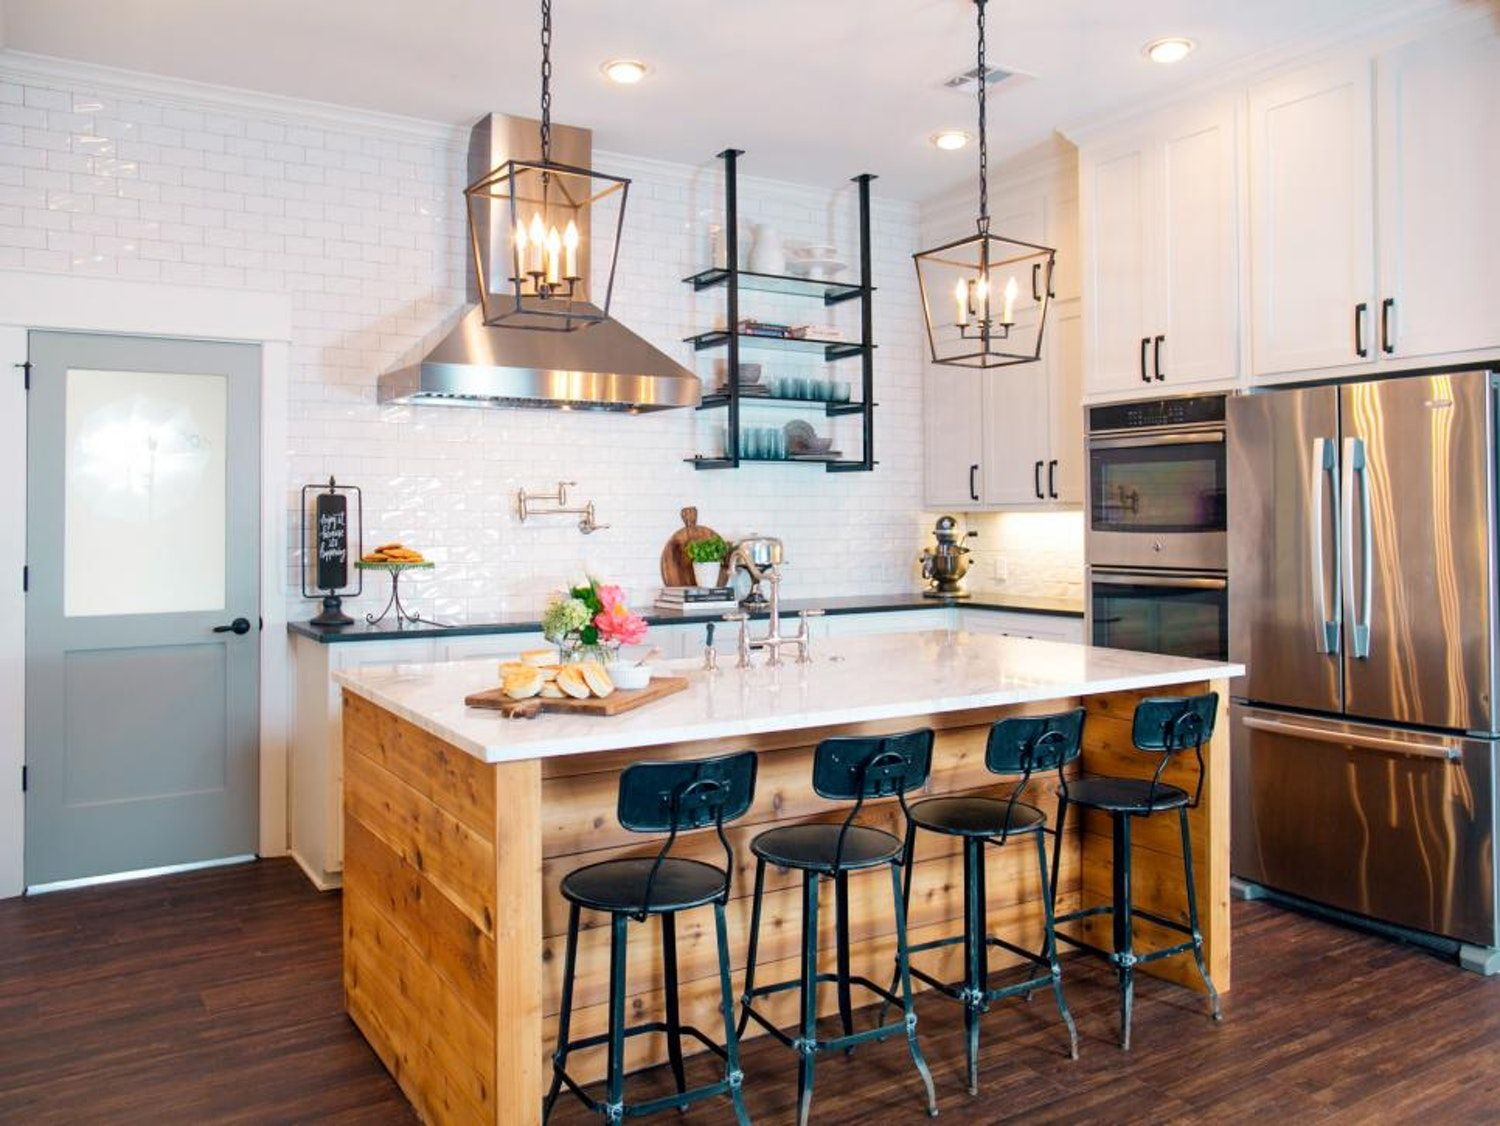 9 decorating ideas to steal from joanna gaines eclectic kitchen living room kitchen joanna on kitchen layout ideas with island joanna gaines id=34740